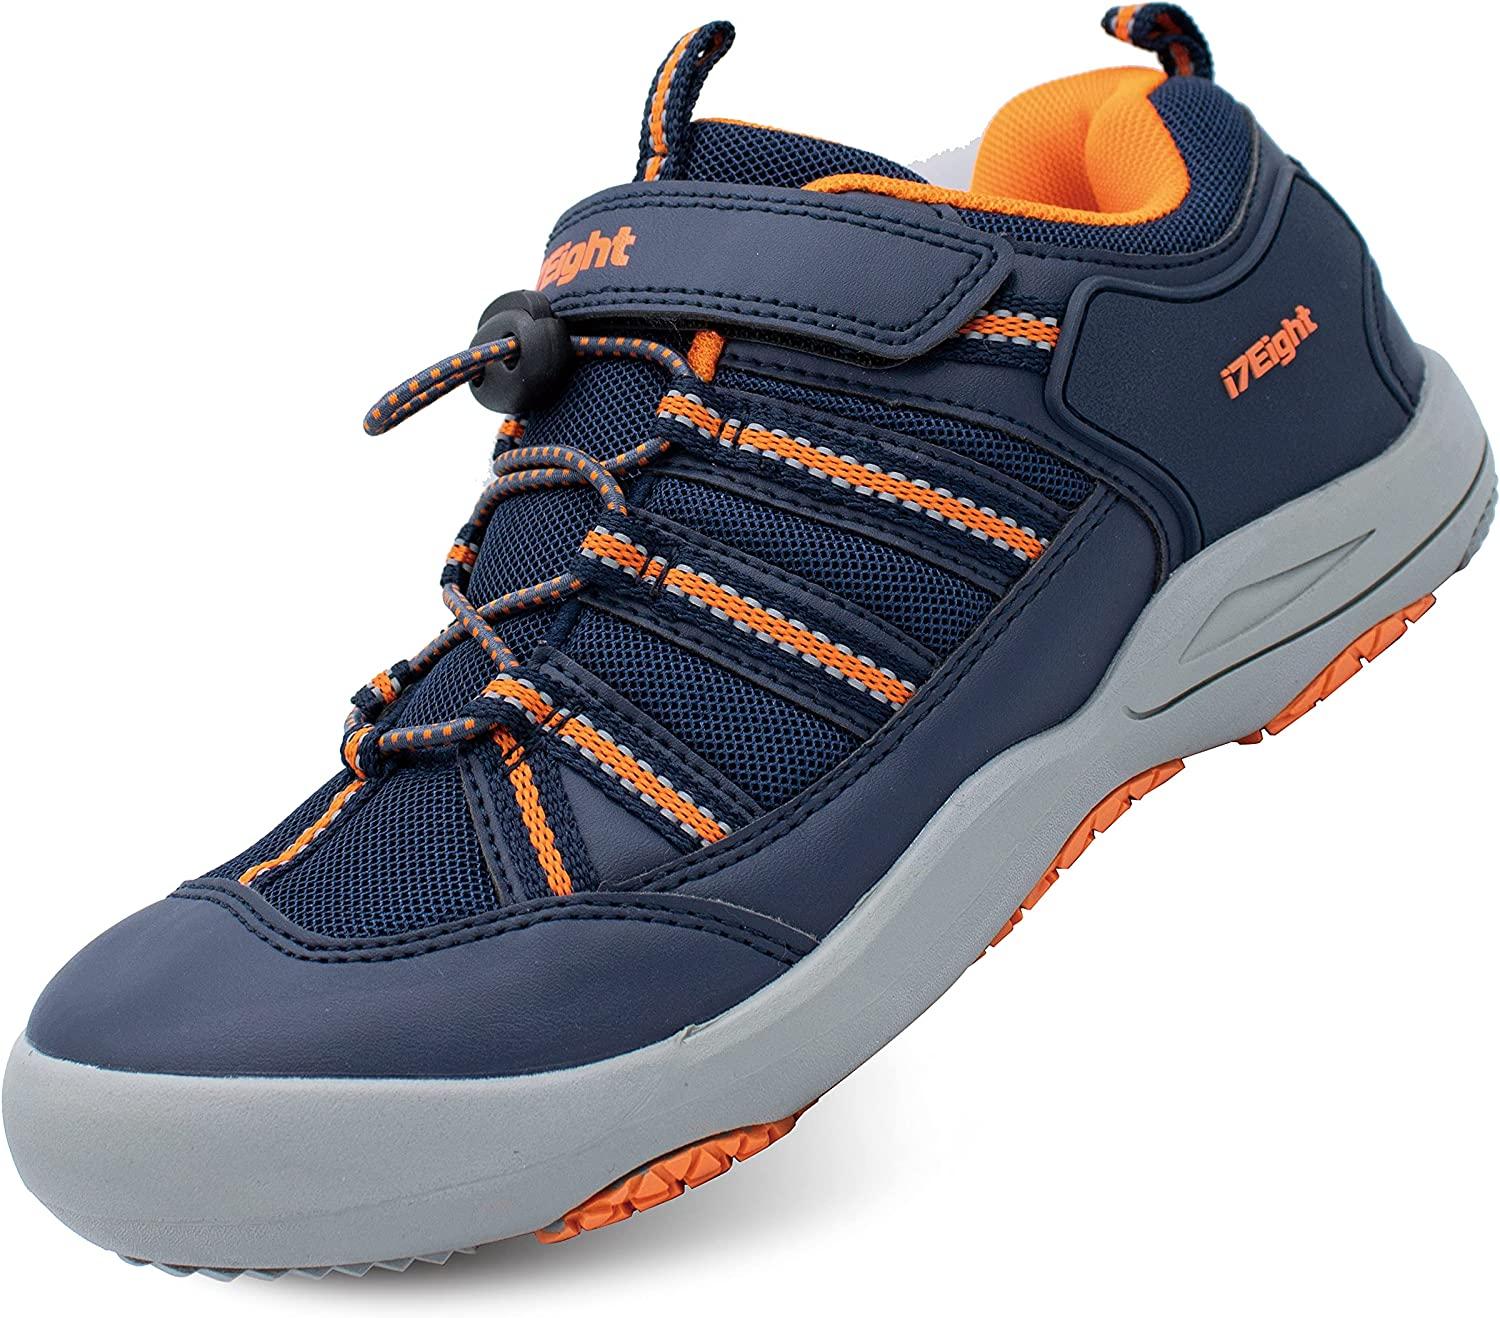 i78 Low Top Kids Boys Girls Synthe Max 90% OFF Hiking Shoes Breathable Max 44% OFF Sport